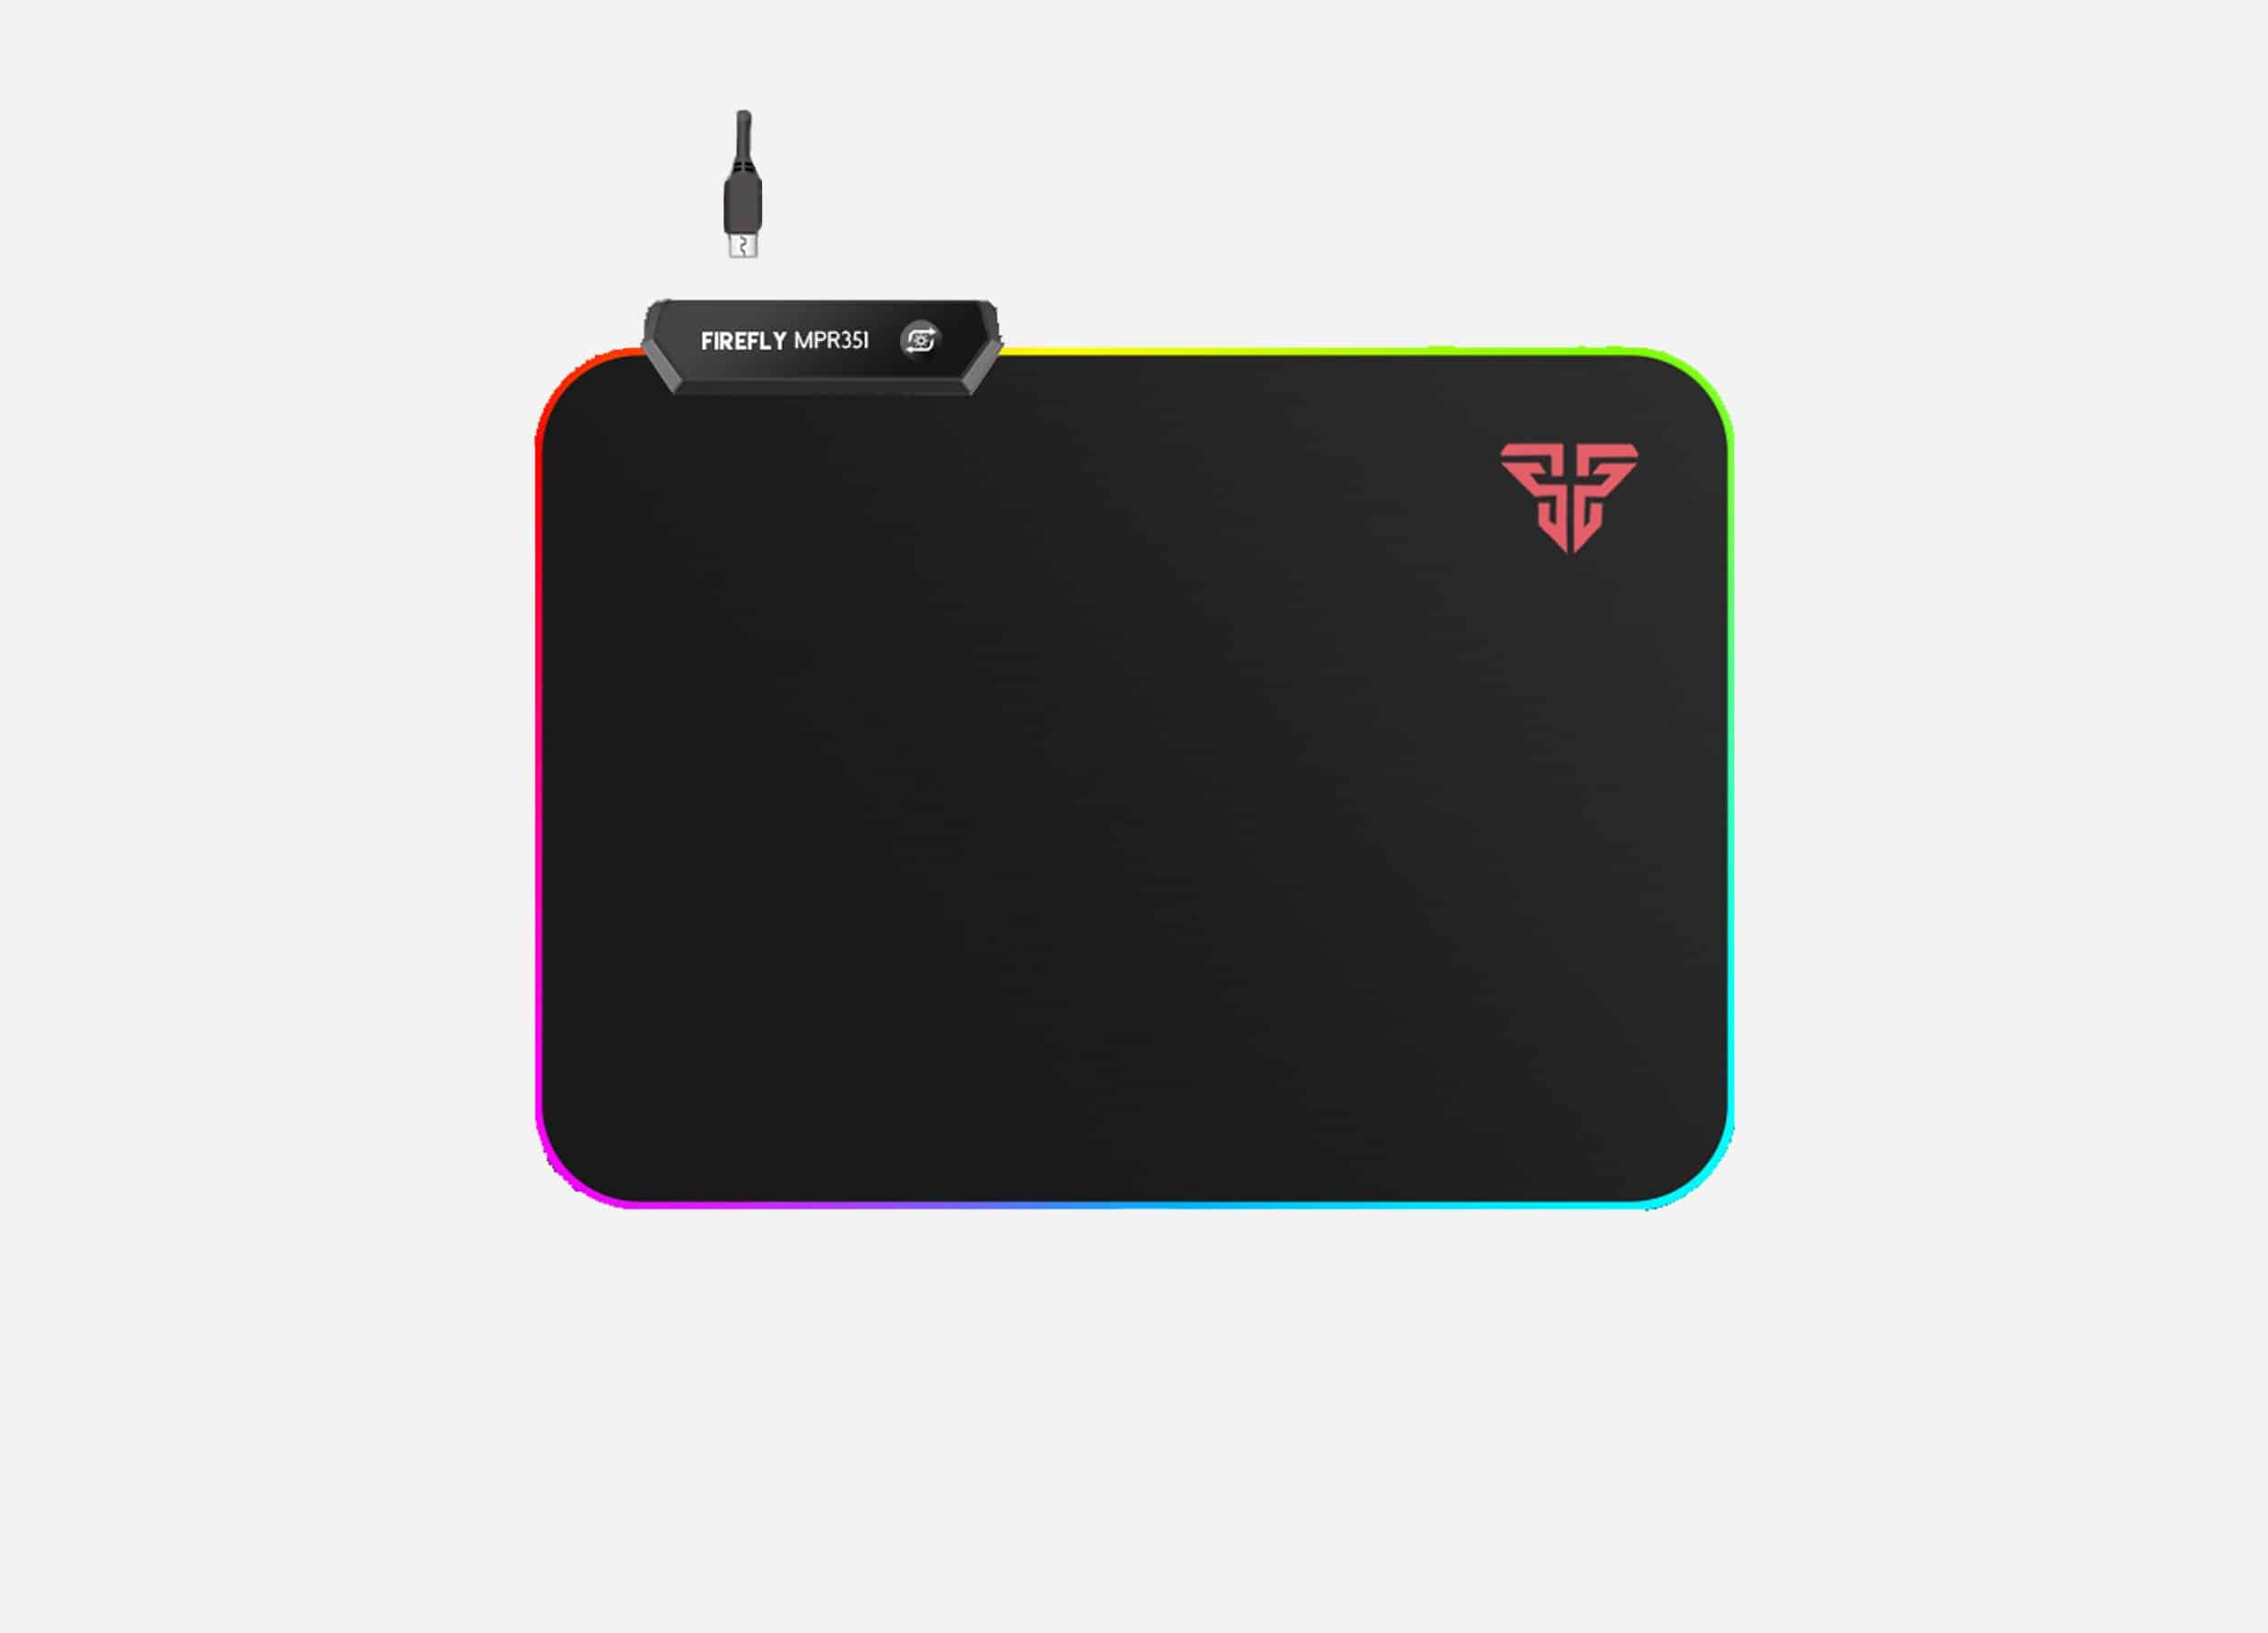 FANTECH MPR351 Gaming Mouse Pad